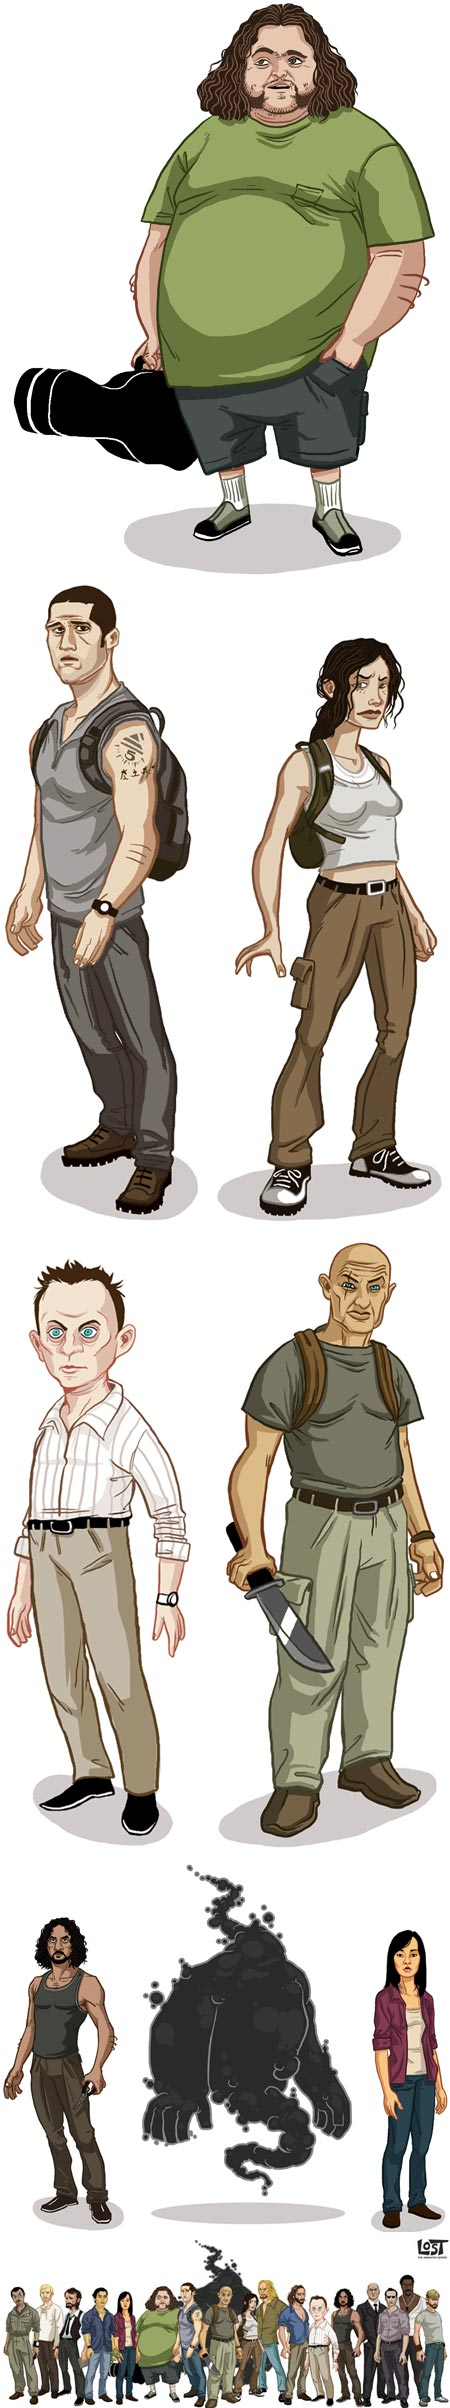 LOST: The Animated Series character designs  - Michael Myers